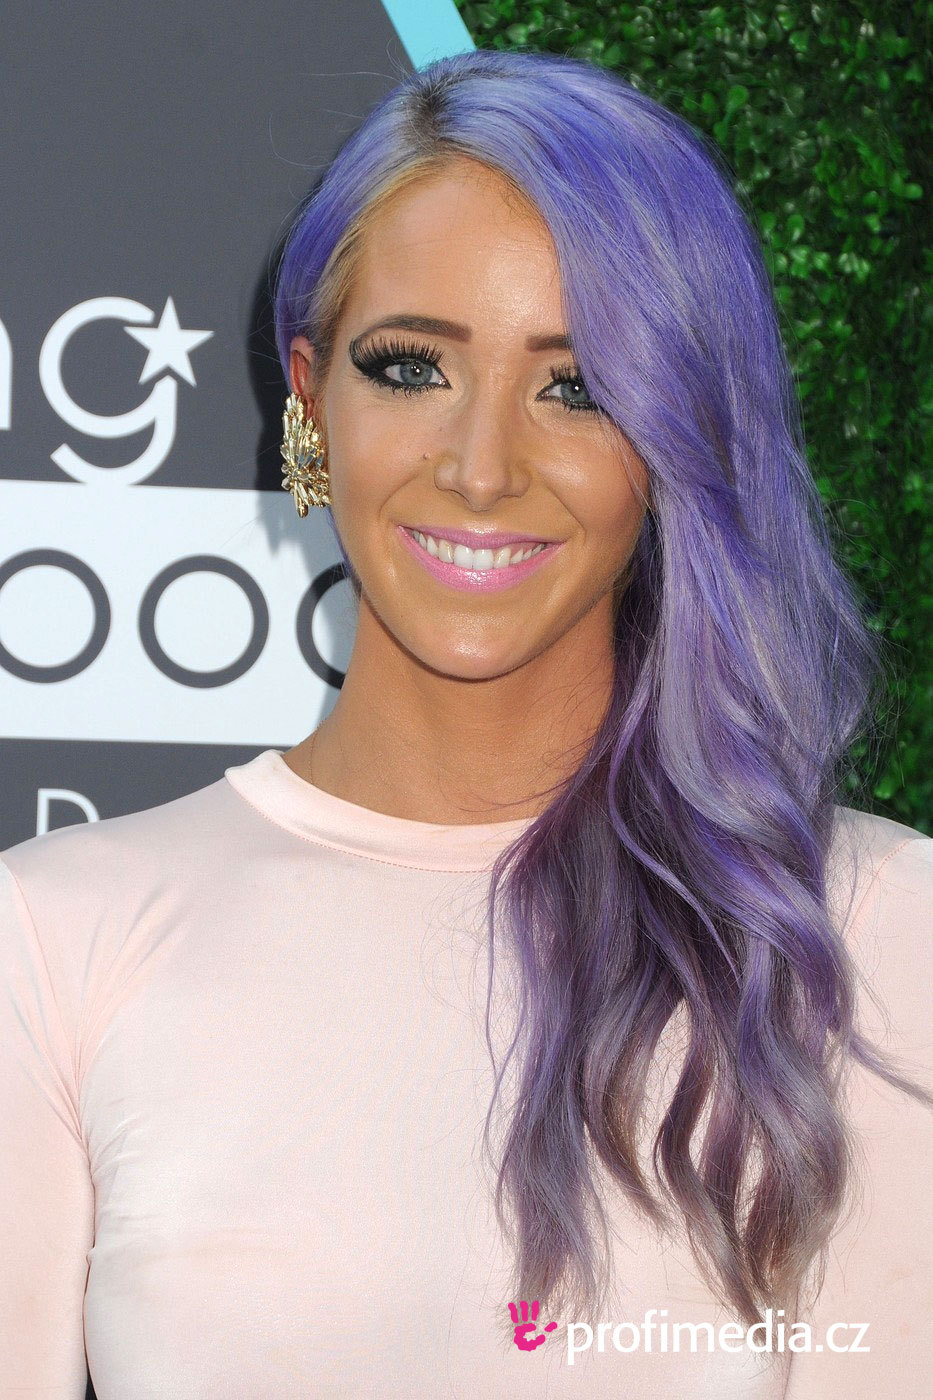 Jenna Marbles Iphone Sexy Wallpapers